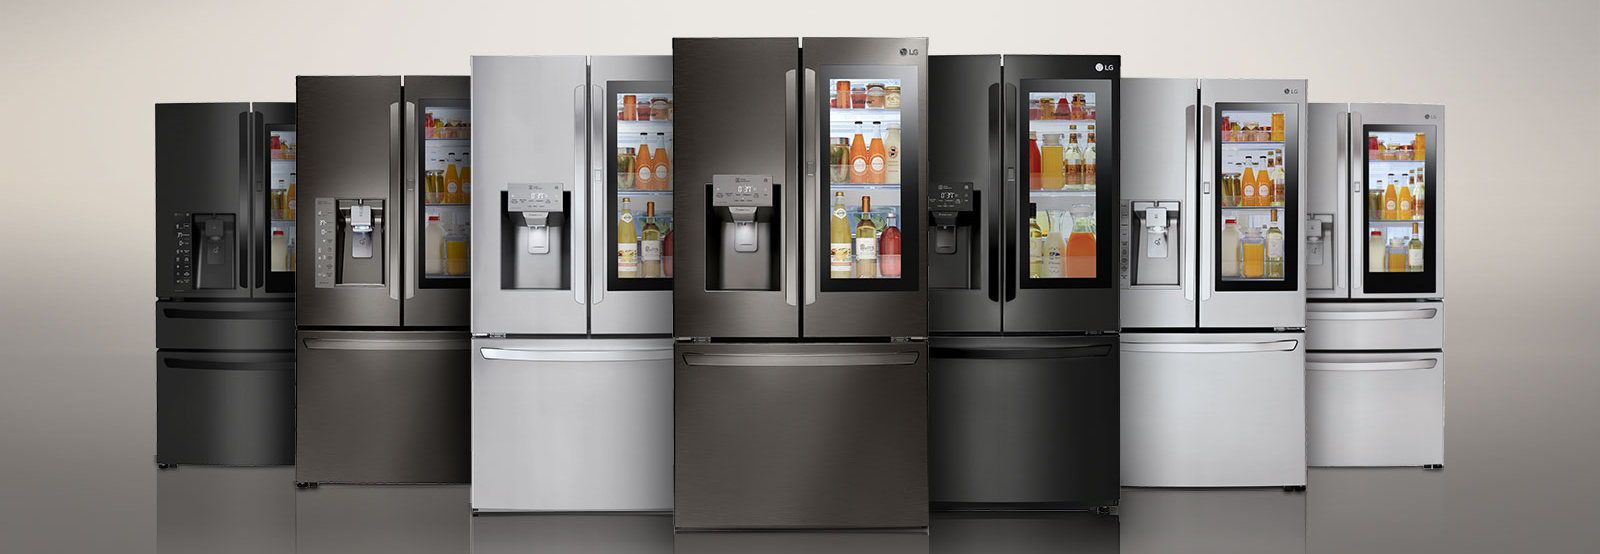 LG Instaview Fridge Freezers